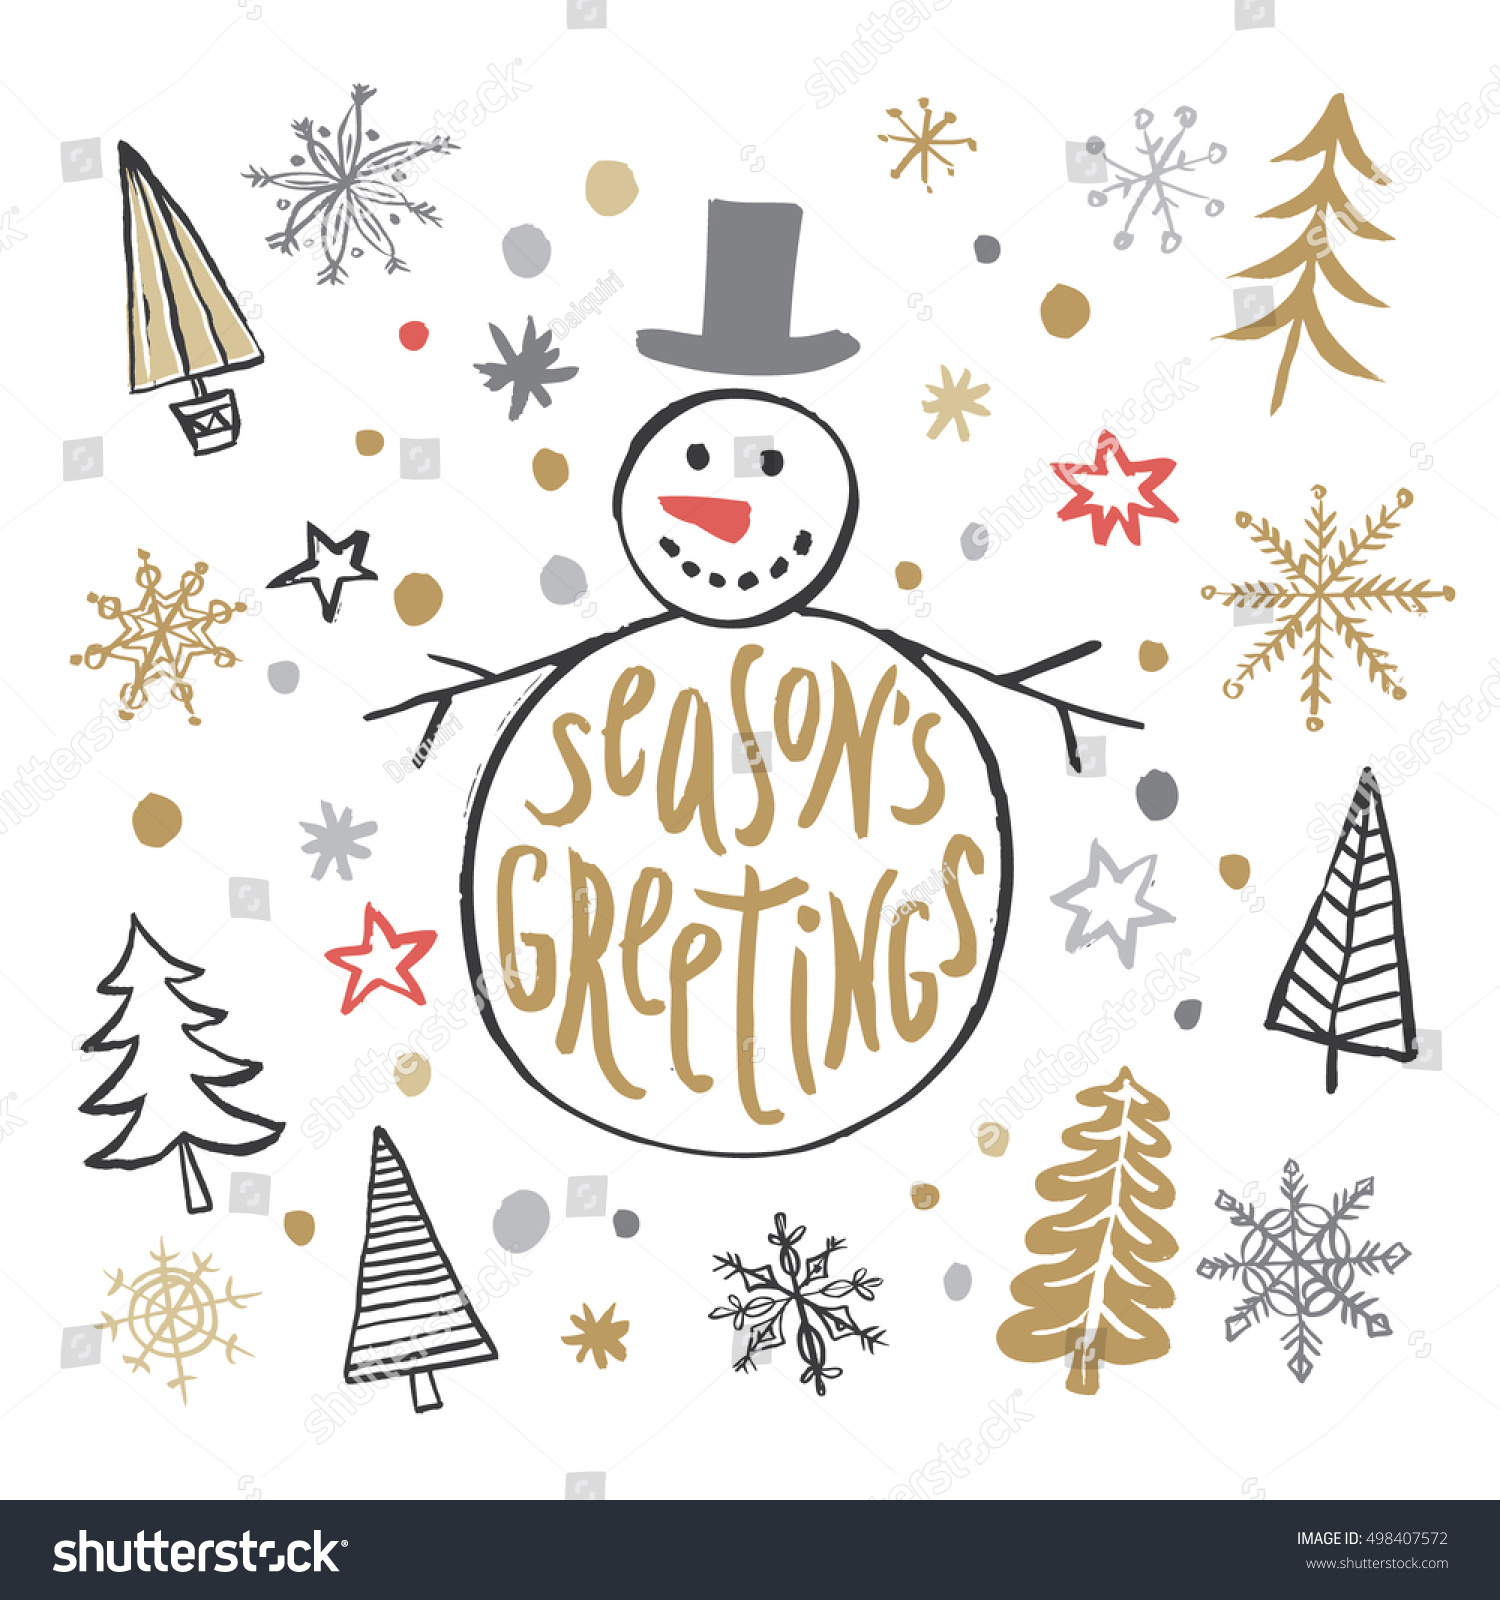 Christmas greeting hand drawn card snowman stock vector 498407572 christmas greeting hand drawn card with snowman christmas trees and snowflakes seasons greeting handwritten kristyandbryce Choice Image